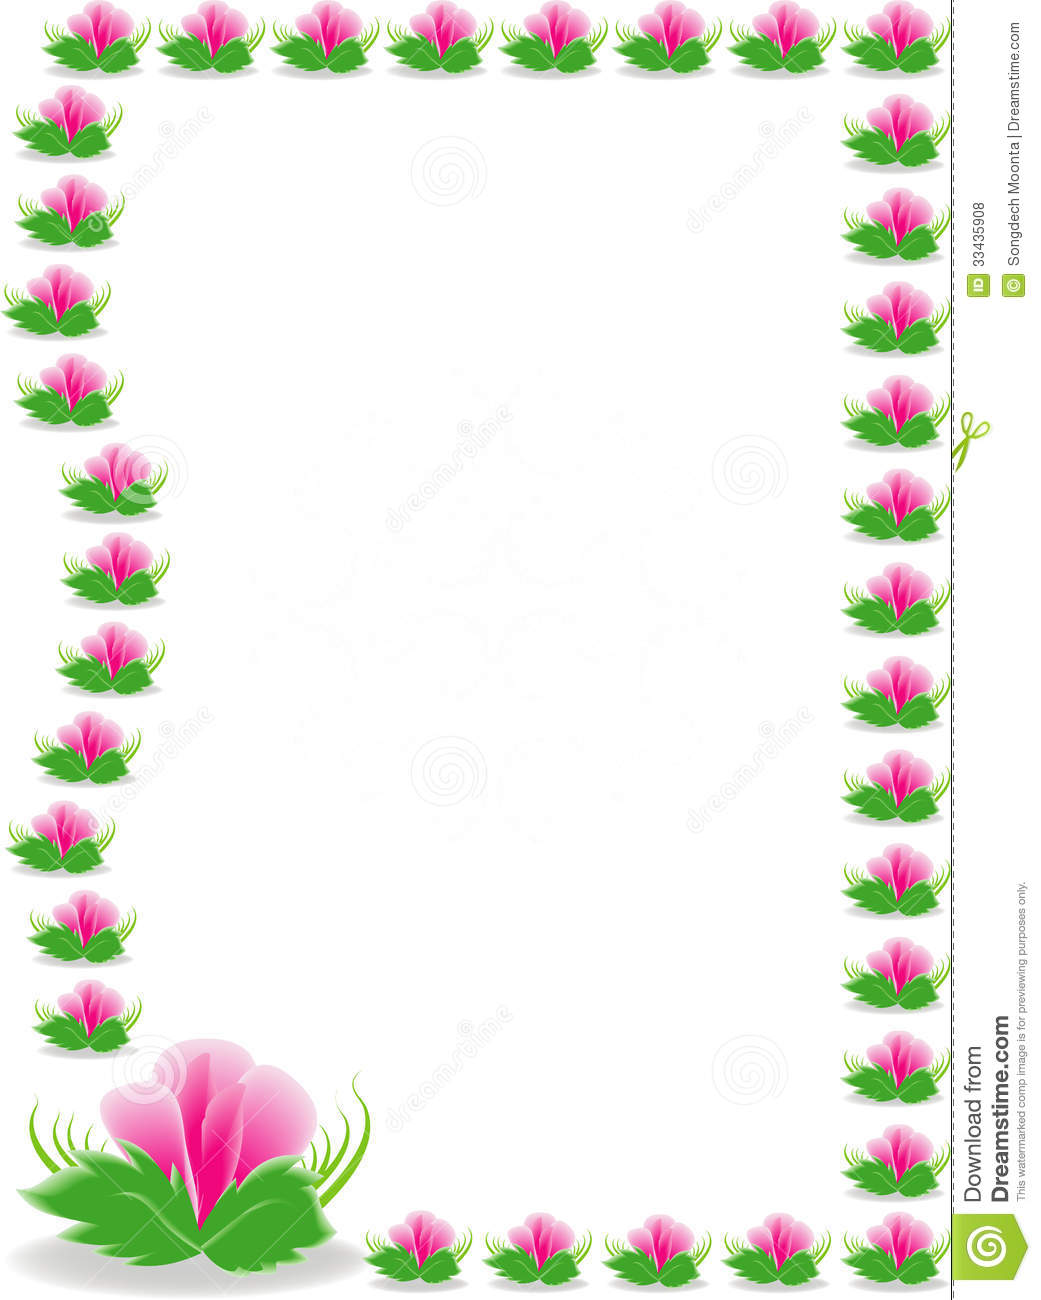 Pink Flowers Border Stock Vector Illustration Of Grass 33435908